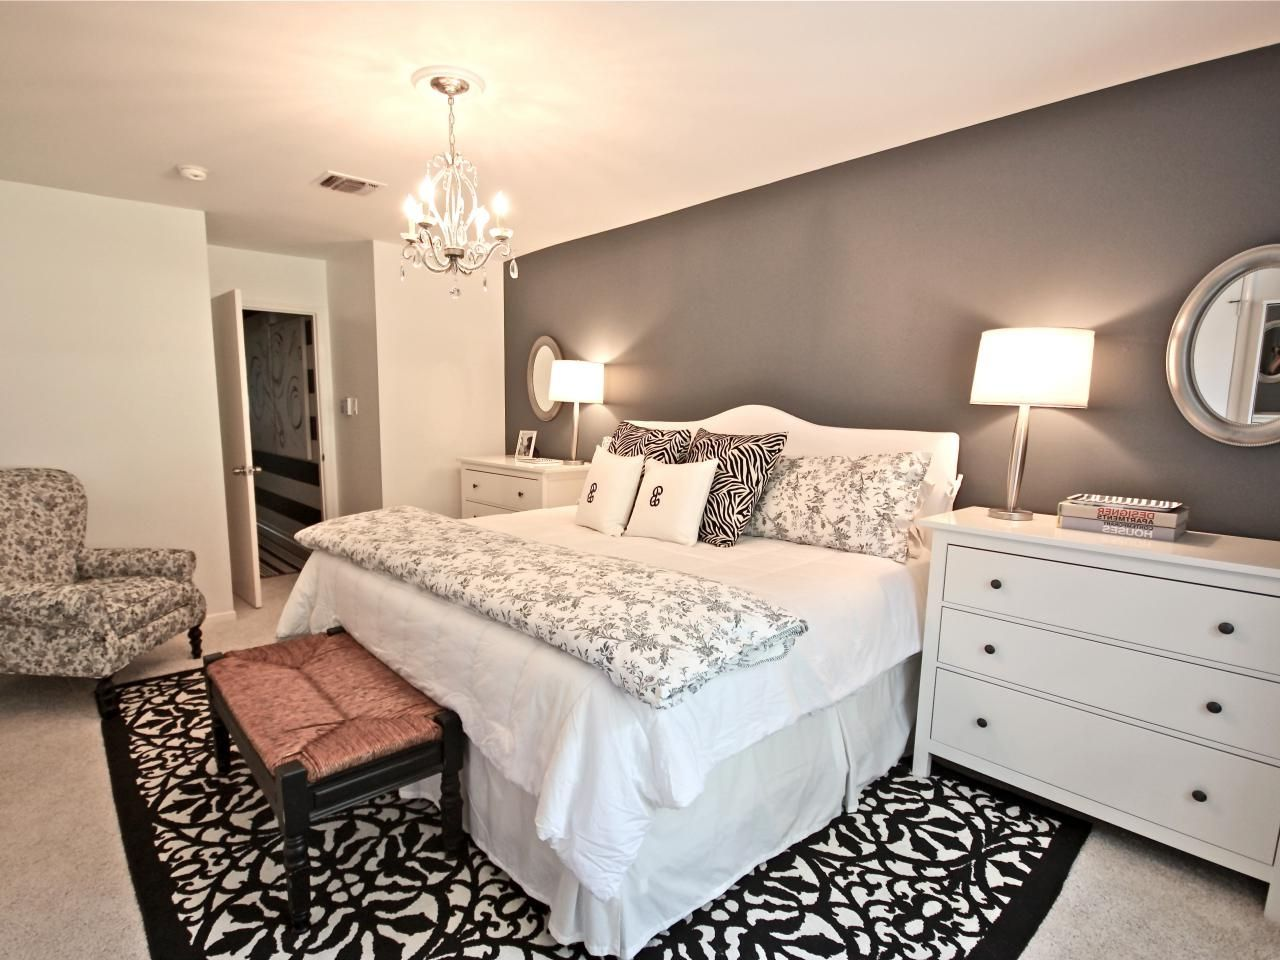 Bedroom Decorating Ideas For Small Rooms Simple Outstanding Small